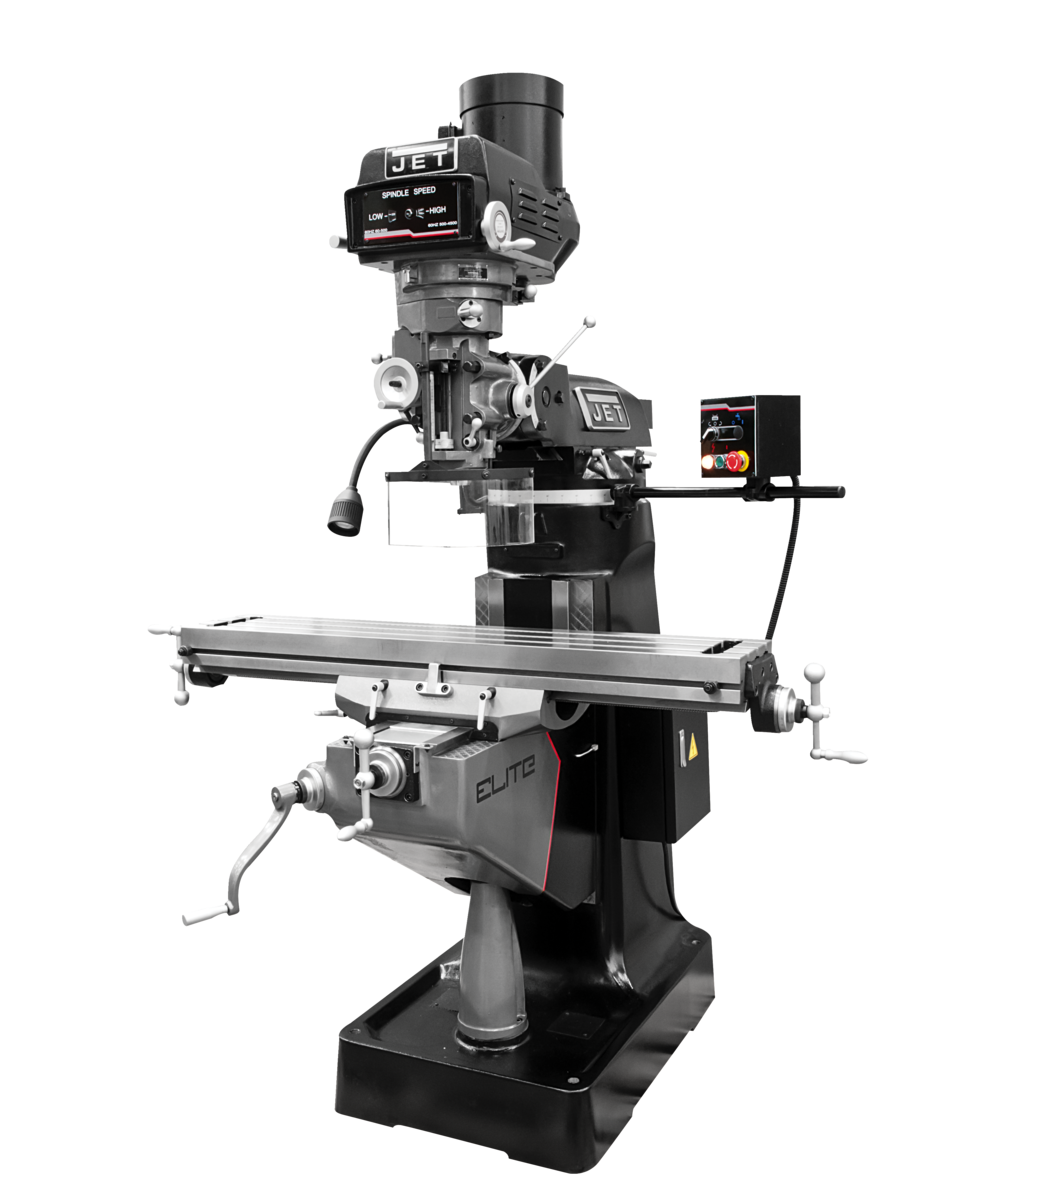 ETM-949 Mill with 2-Axis ACU-RITE 203 DRO and Servo X-Axis Powerfeed